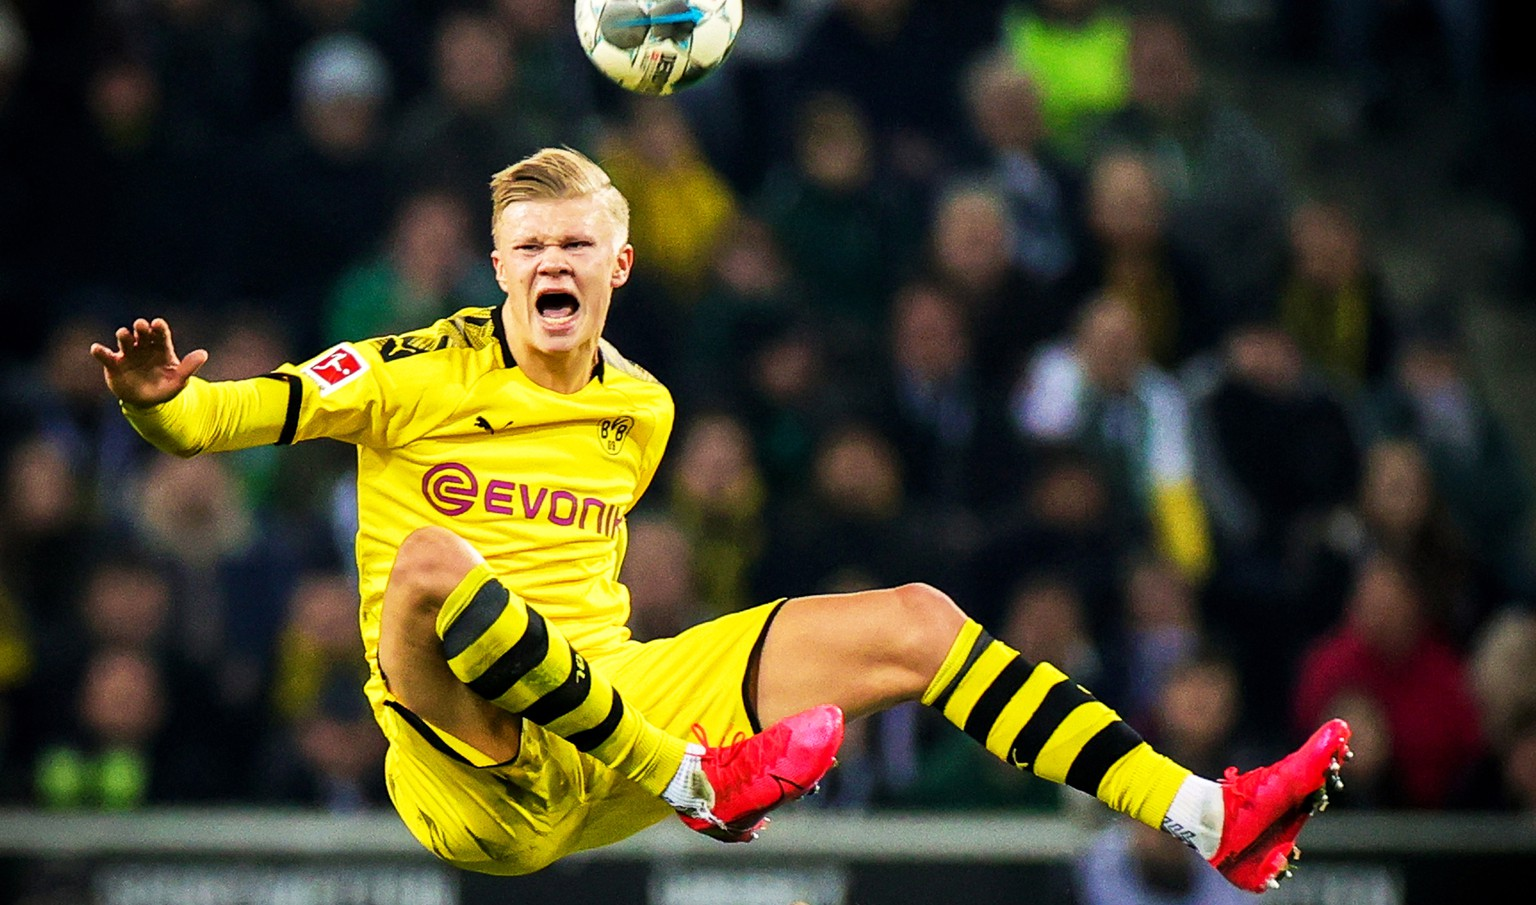 epa08277210 Dortmund's Erling Haaland in action during the German Bundesliga soccer match between Borussia Moenchengladbach and Borussia Dortmund in Moenchengladbach, Germany, 07 March 2020.  EPA/FRIEDEMANN VOGEL CONDITIONS - ATTENTION: The DFL regulations prohibit any use of photographs as image sequences and/or quasi-video.